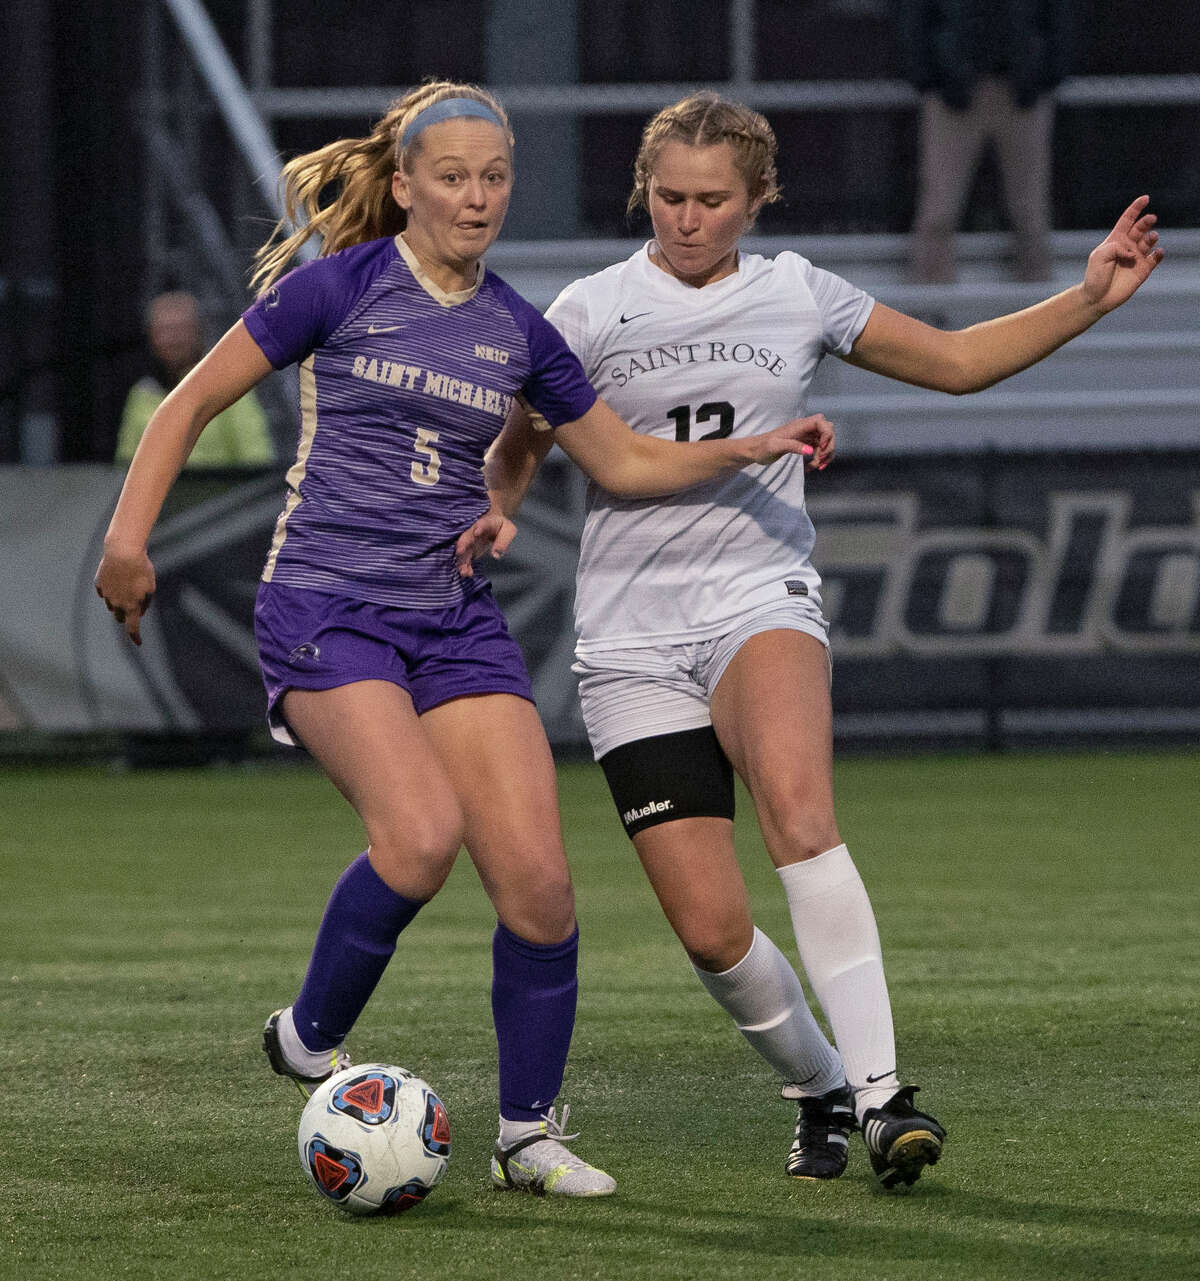 St. Michael's Emma Houston, left, and St. Rose's Mia Klammer battle for the ball during a soccer game at Plumeri Sports Complex on Tuesday, Oct, 5, 2021 in Albany, N.Y.